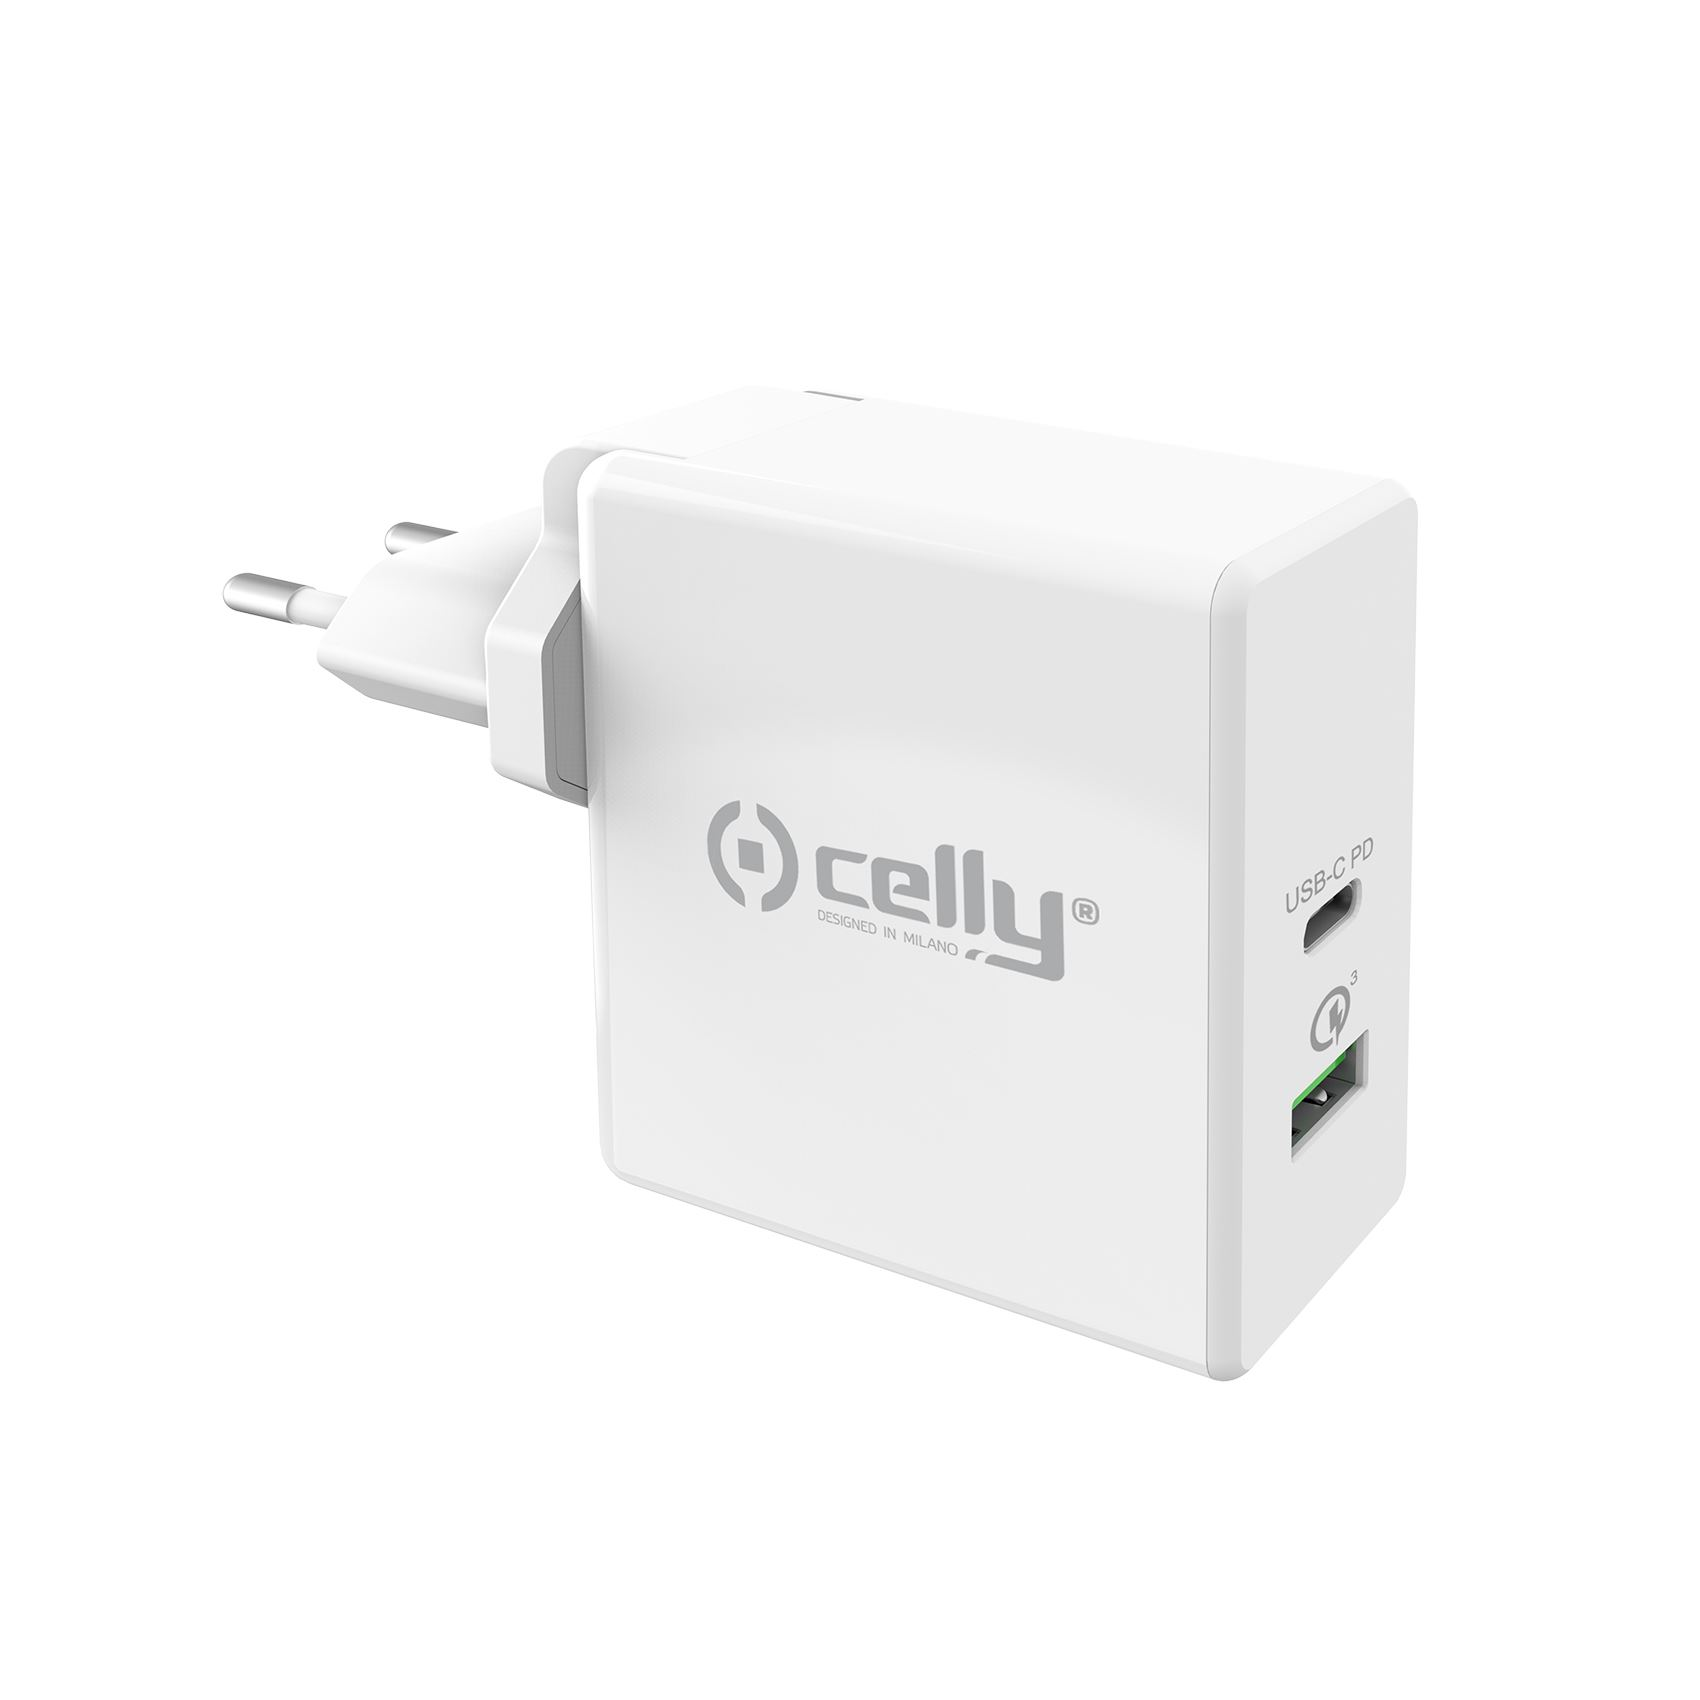 PD WALL CHARGER - UNIVERSAL [PRO POWER]